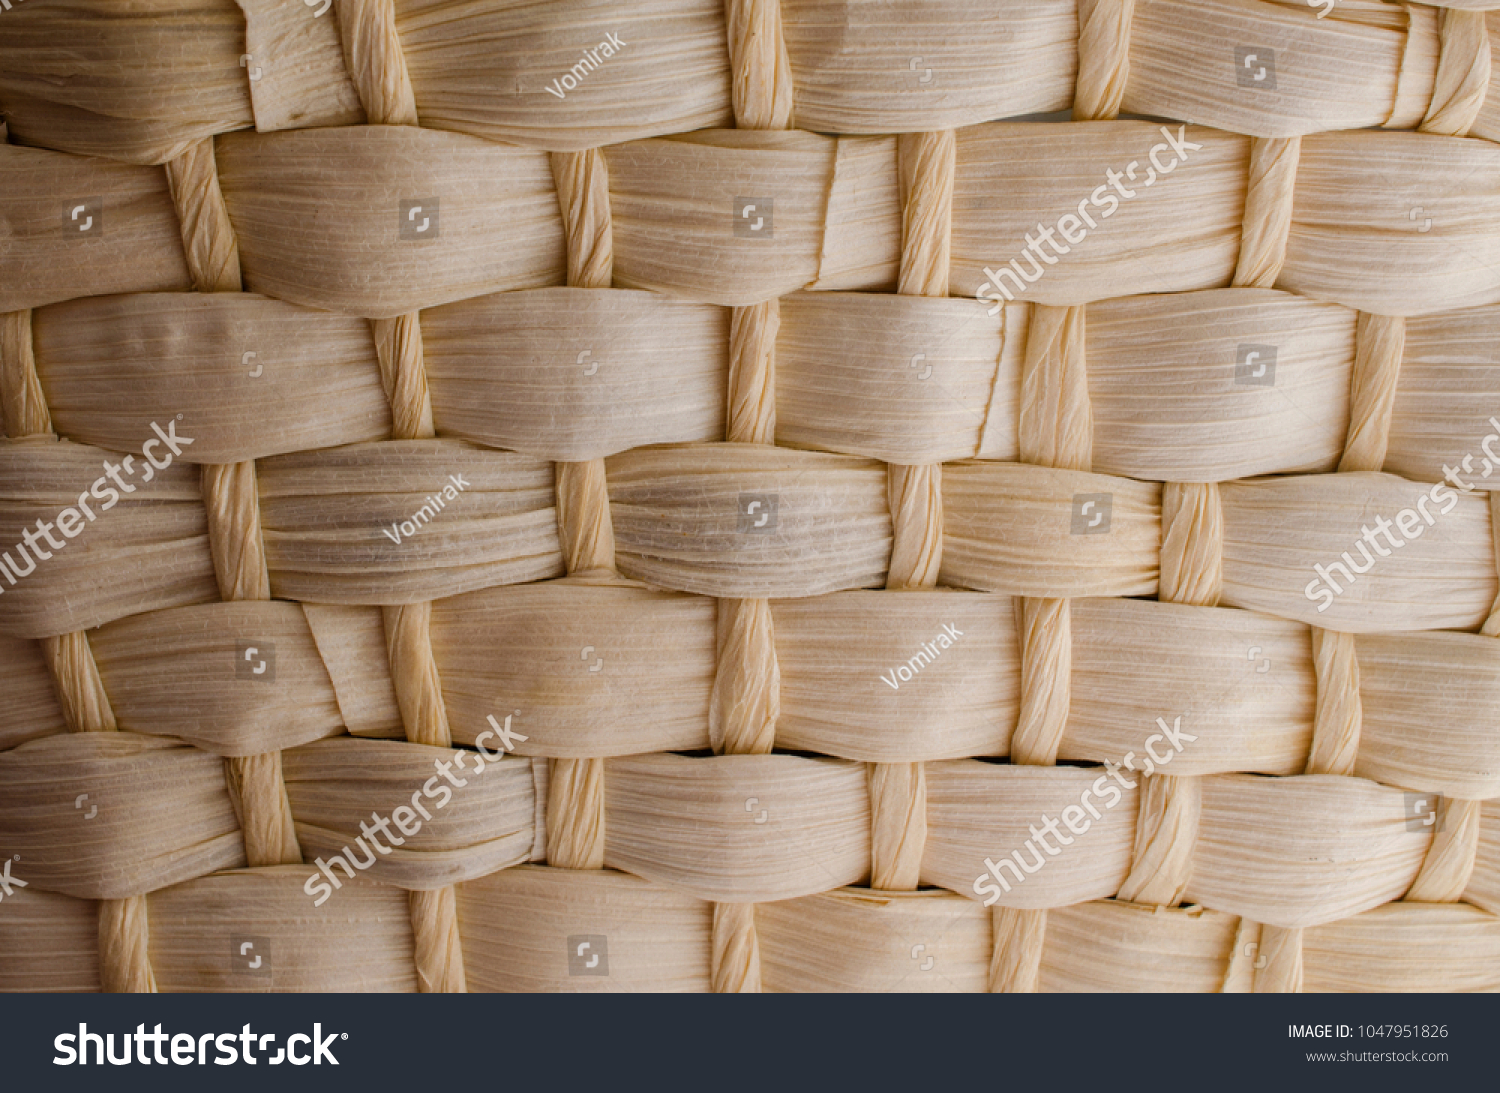 background in the form of a basket made of reed 3d custom wallpaper design